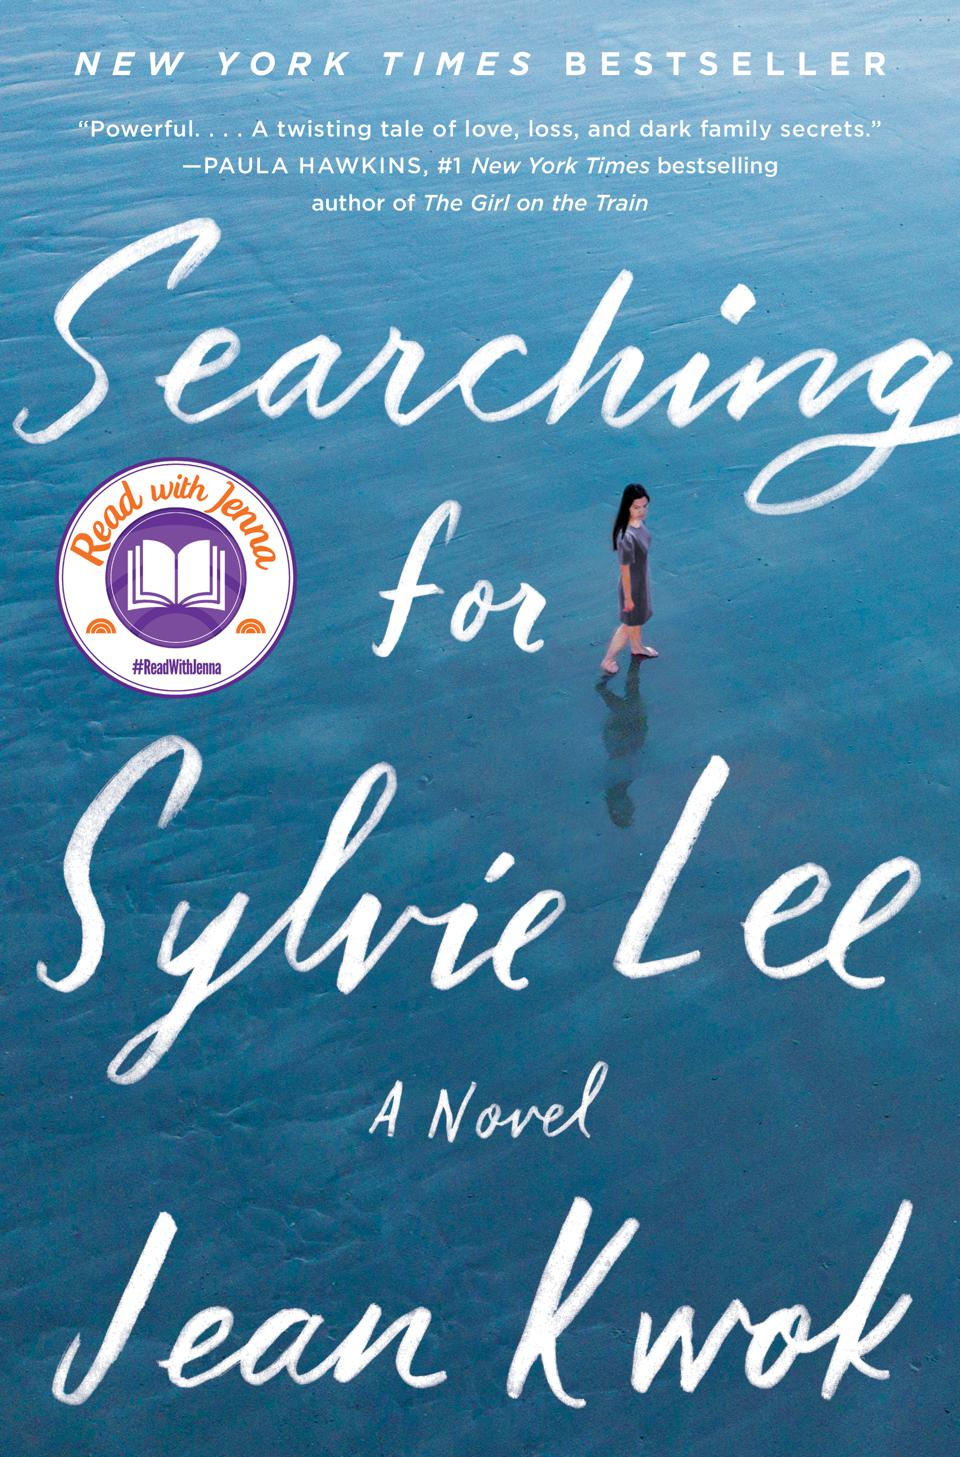 searching for sylvia lee jean kwok book cover